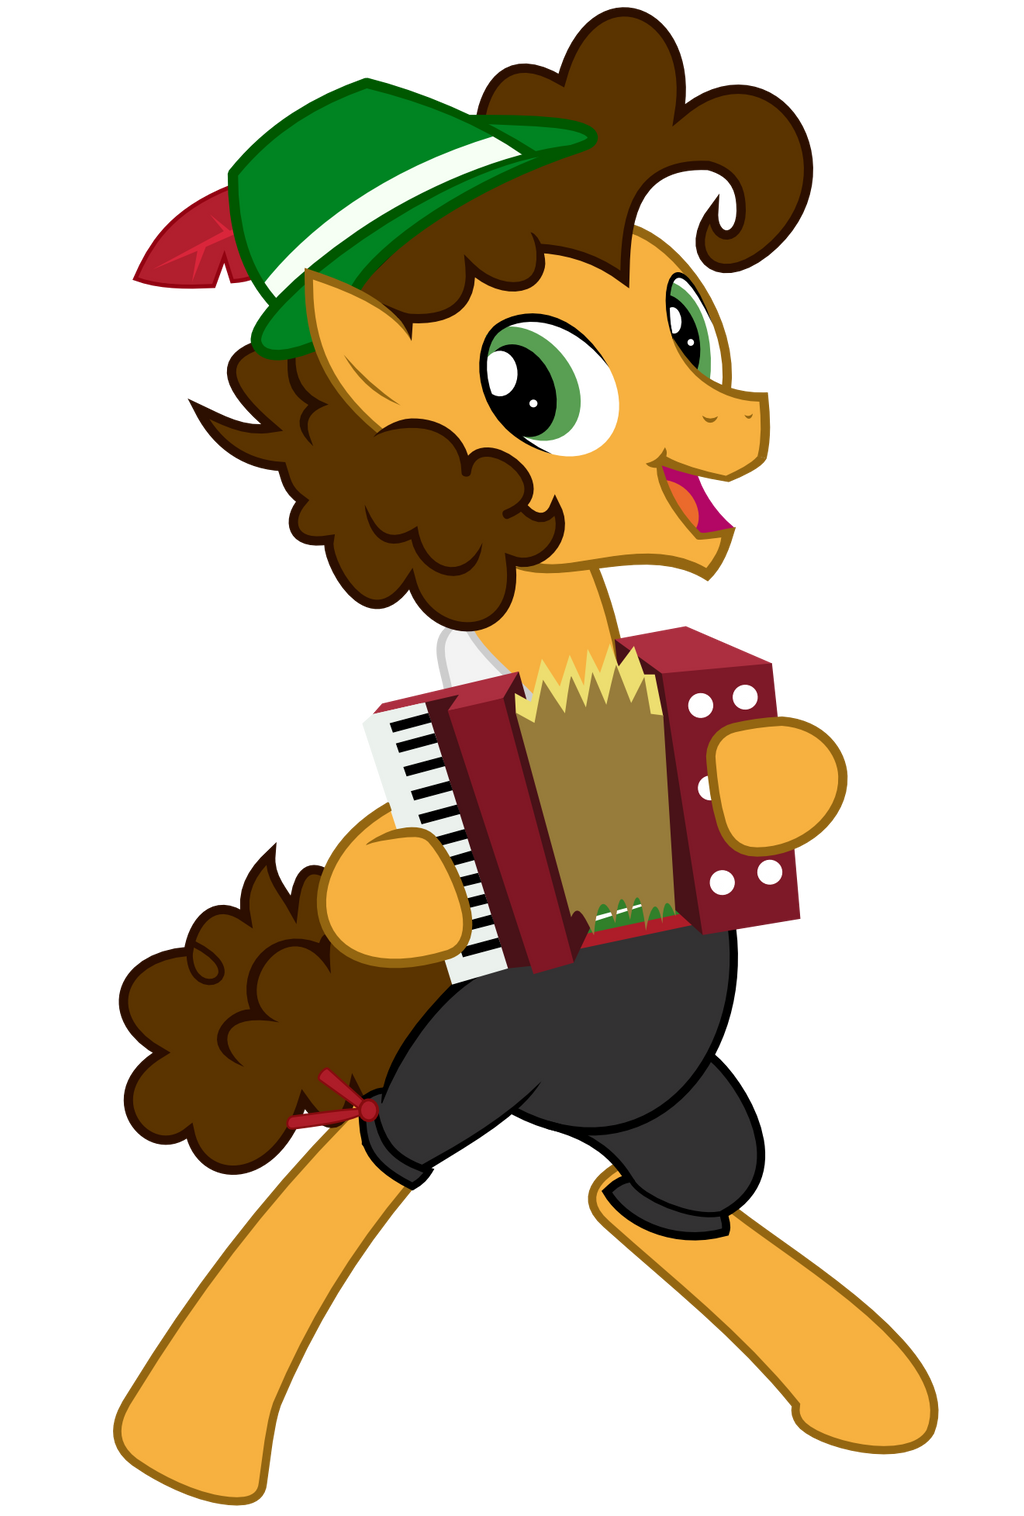 Cheese Sandwich with accordion by dasArchie on DeviantArt